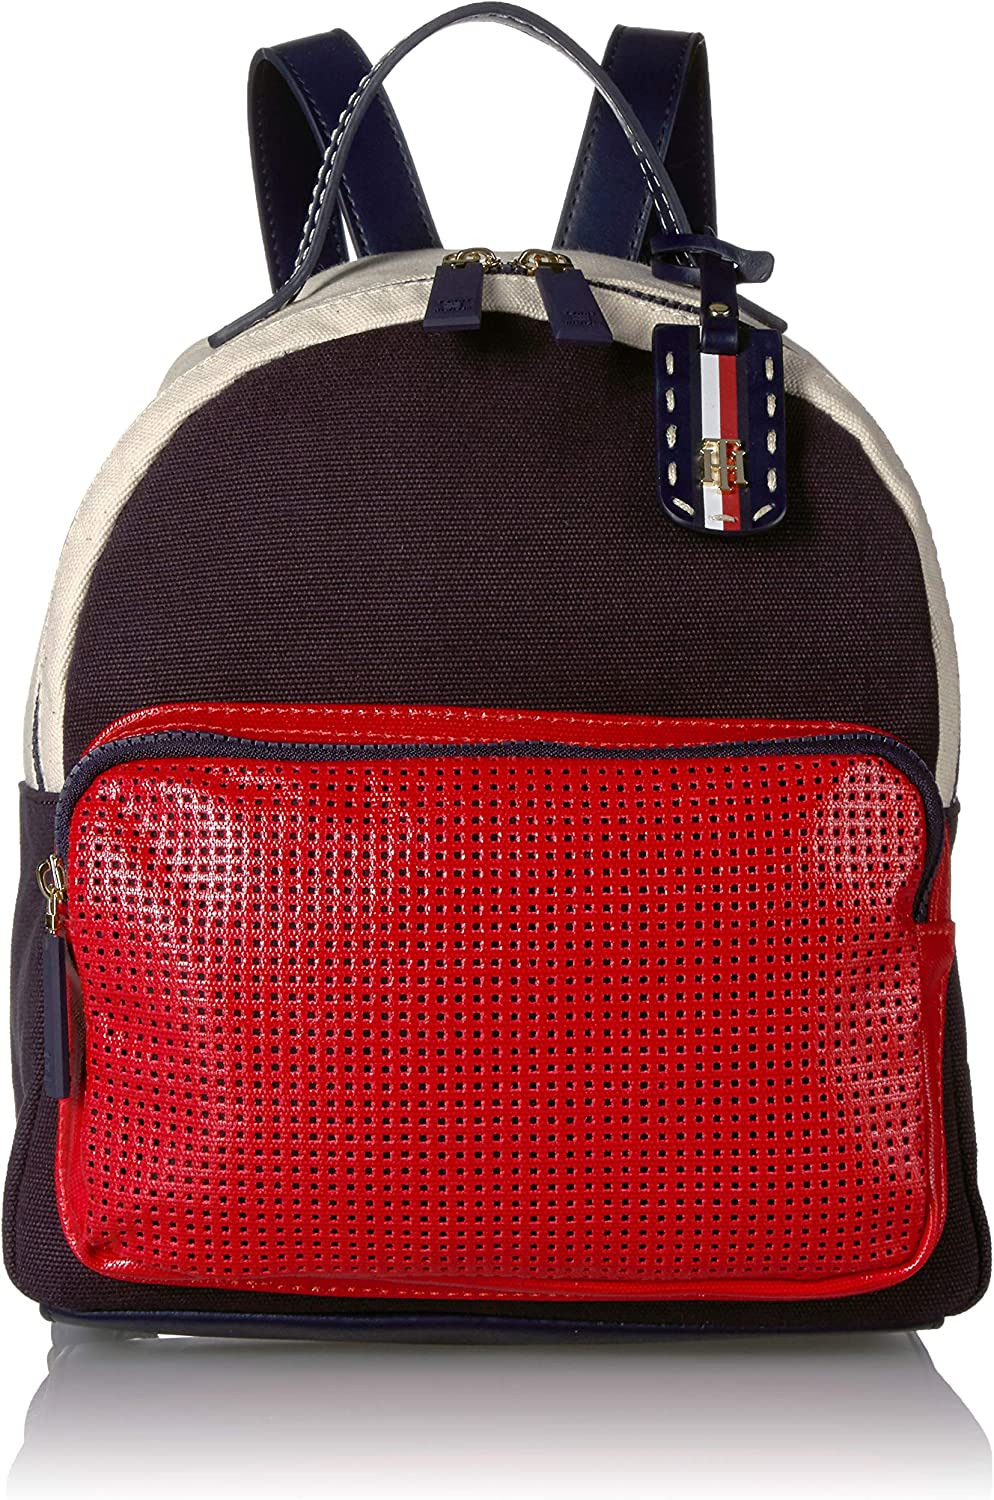 TOMMY HILFIGER Backpack 期間限定送料無料 for Women Navy Julia Red ◇限定Special Price